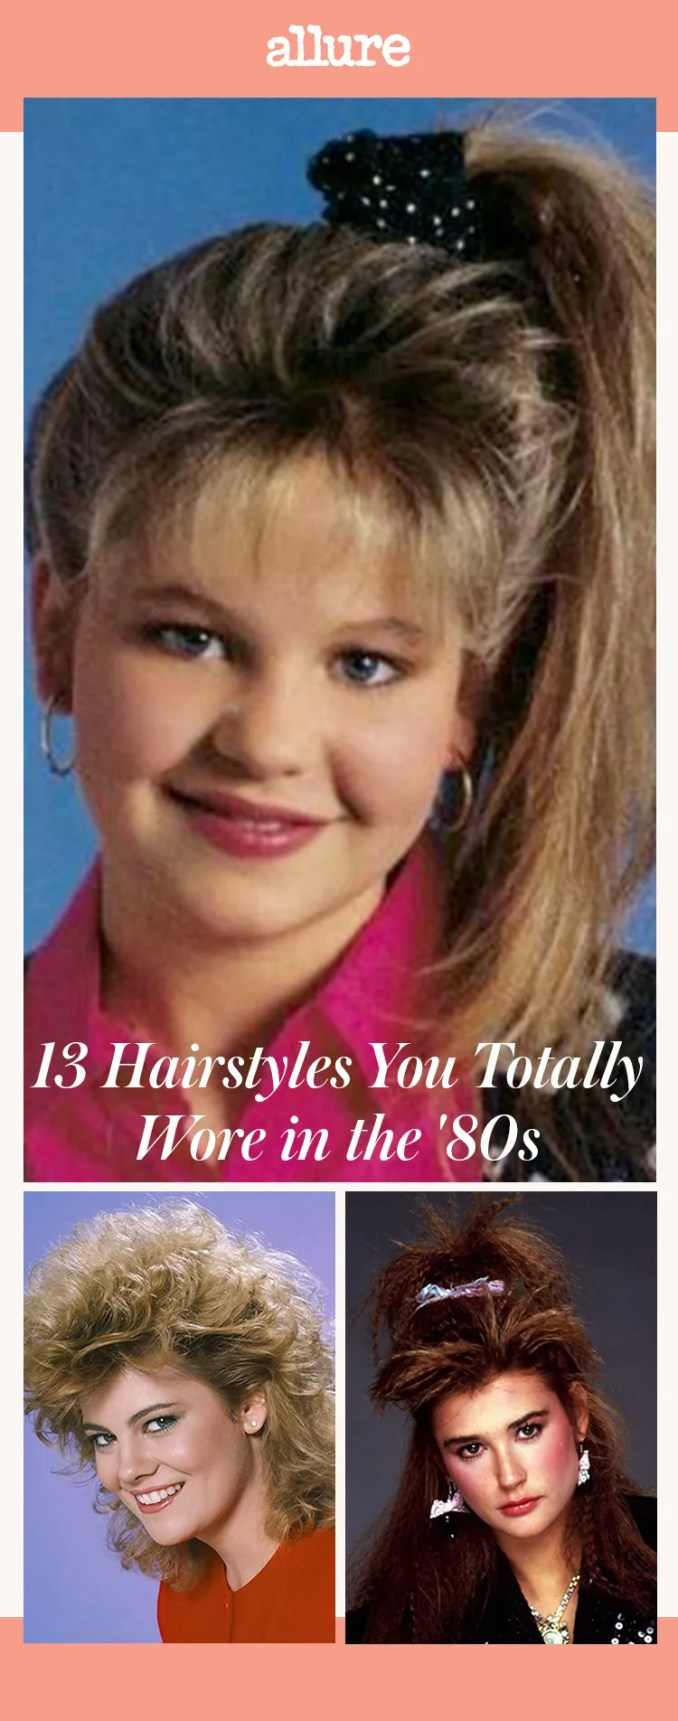 13 hairstyles you totally wore in the '80s   allure